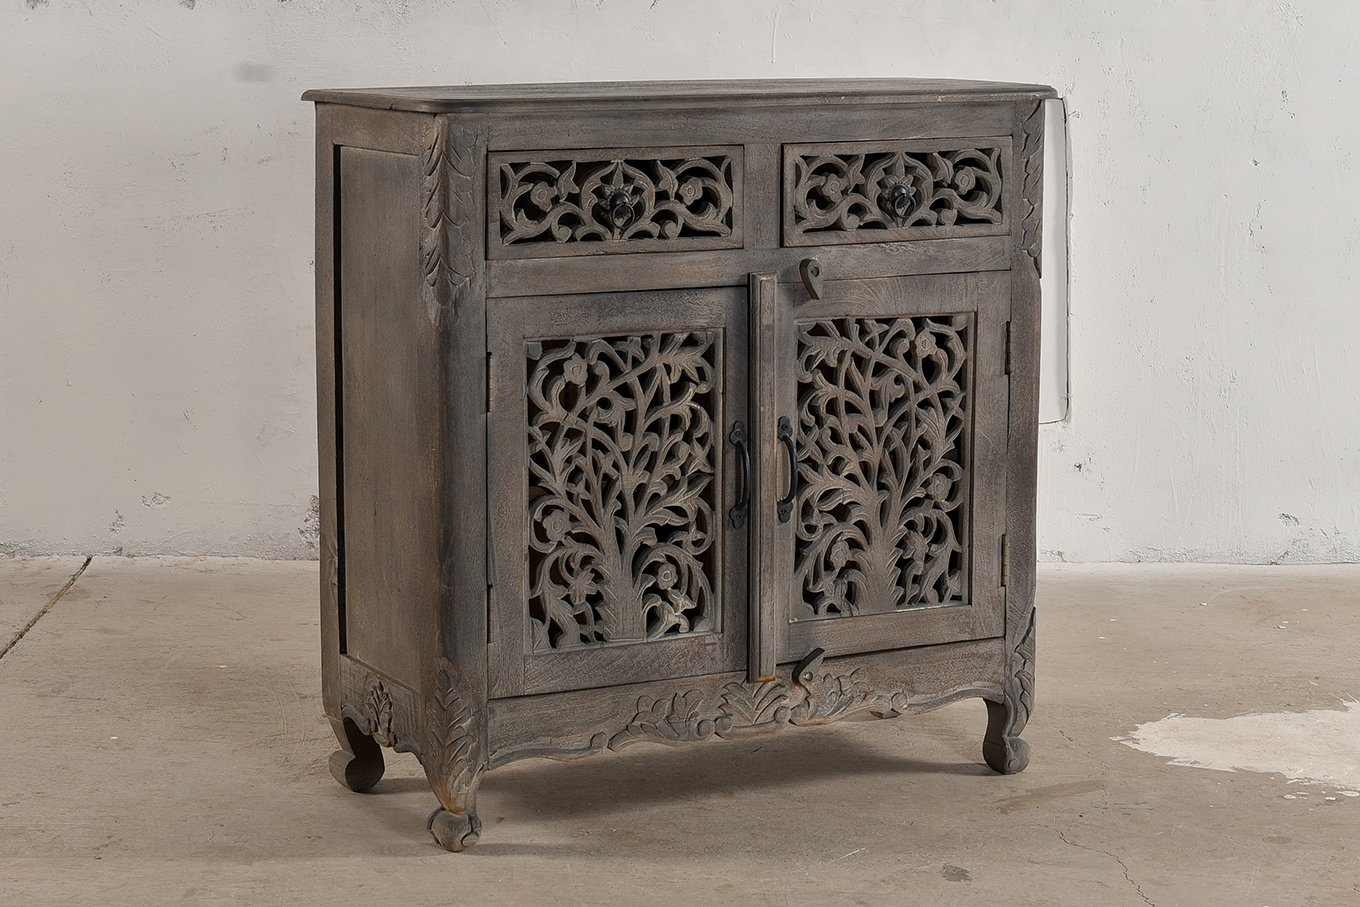 Grey, carved wooden console with 2-doors and drawers